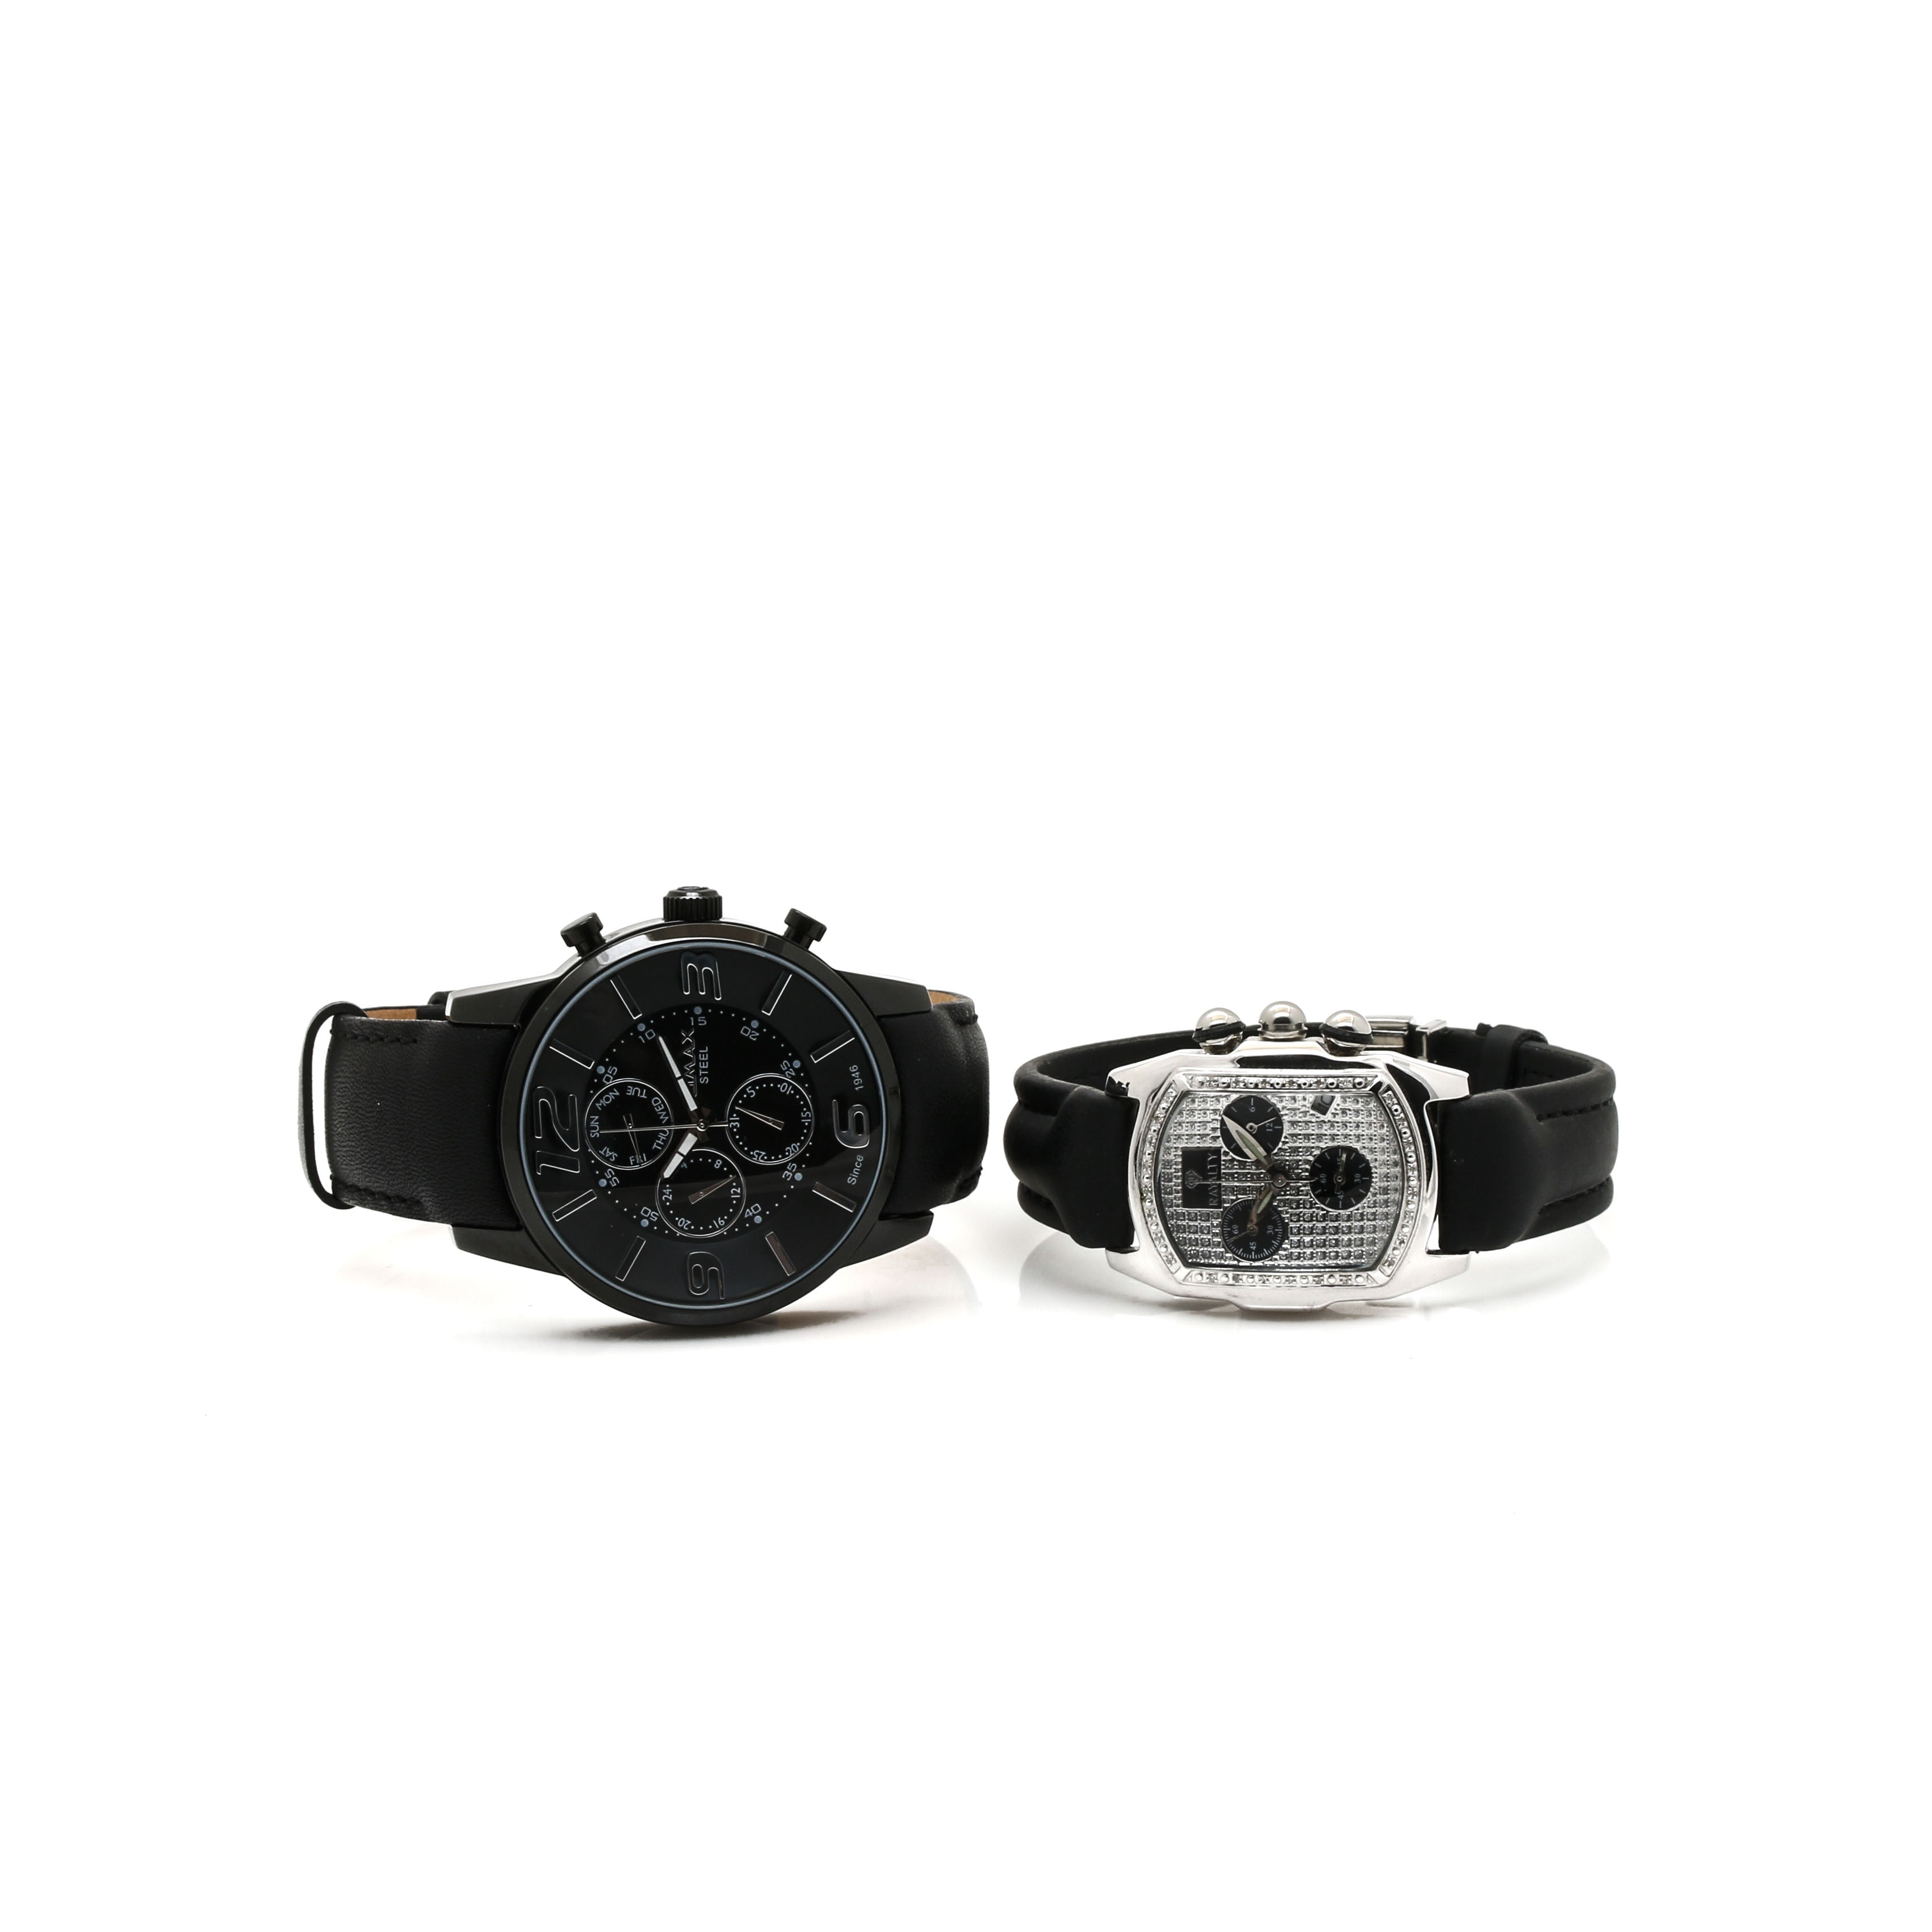 Stainless Steel and Black Leather Analog Wristwatch Selection Including Diamonds